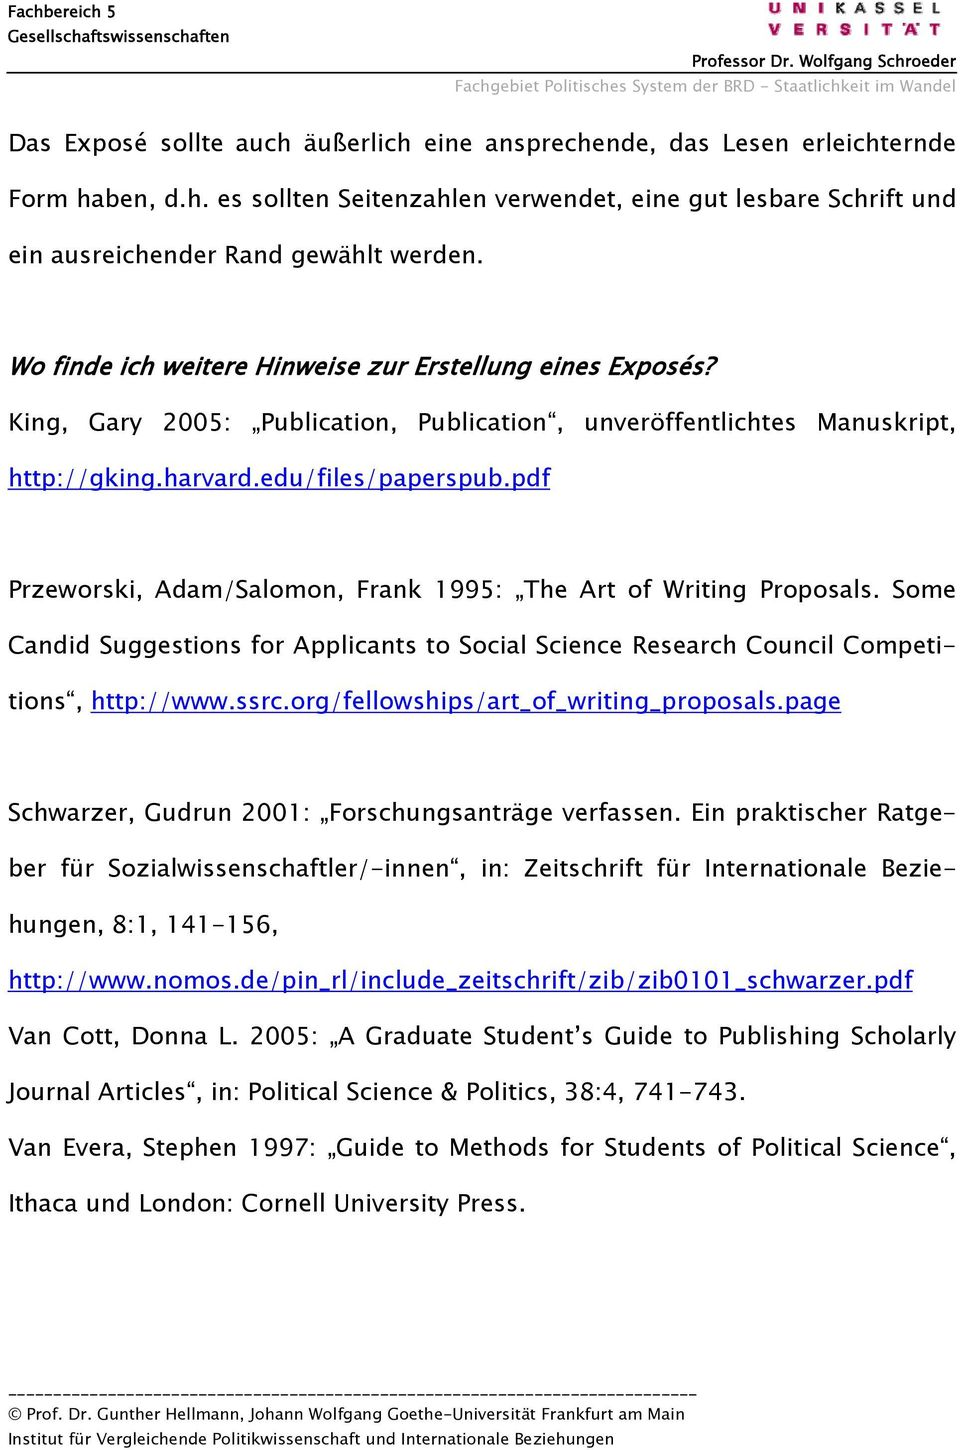 pdf Przeworski, Adam/Salomon, Frank 1995: The Art of Writing Proposals. Some Candid Suggestions for Applicants to Social Science Research Council Competitions, http://www.ssrc.